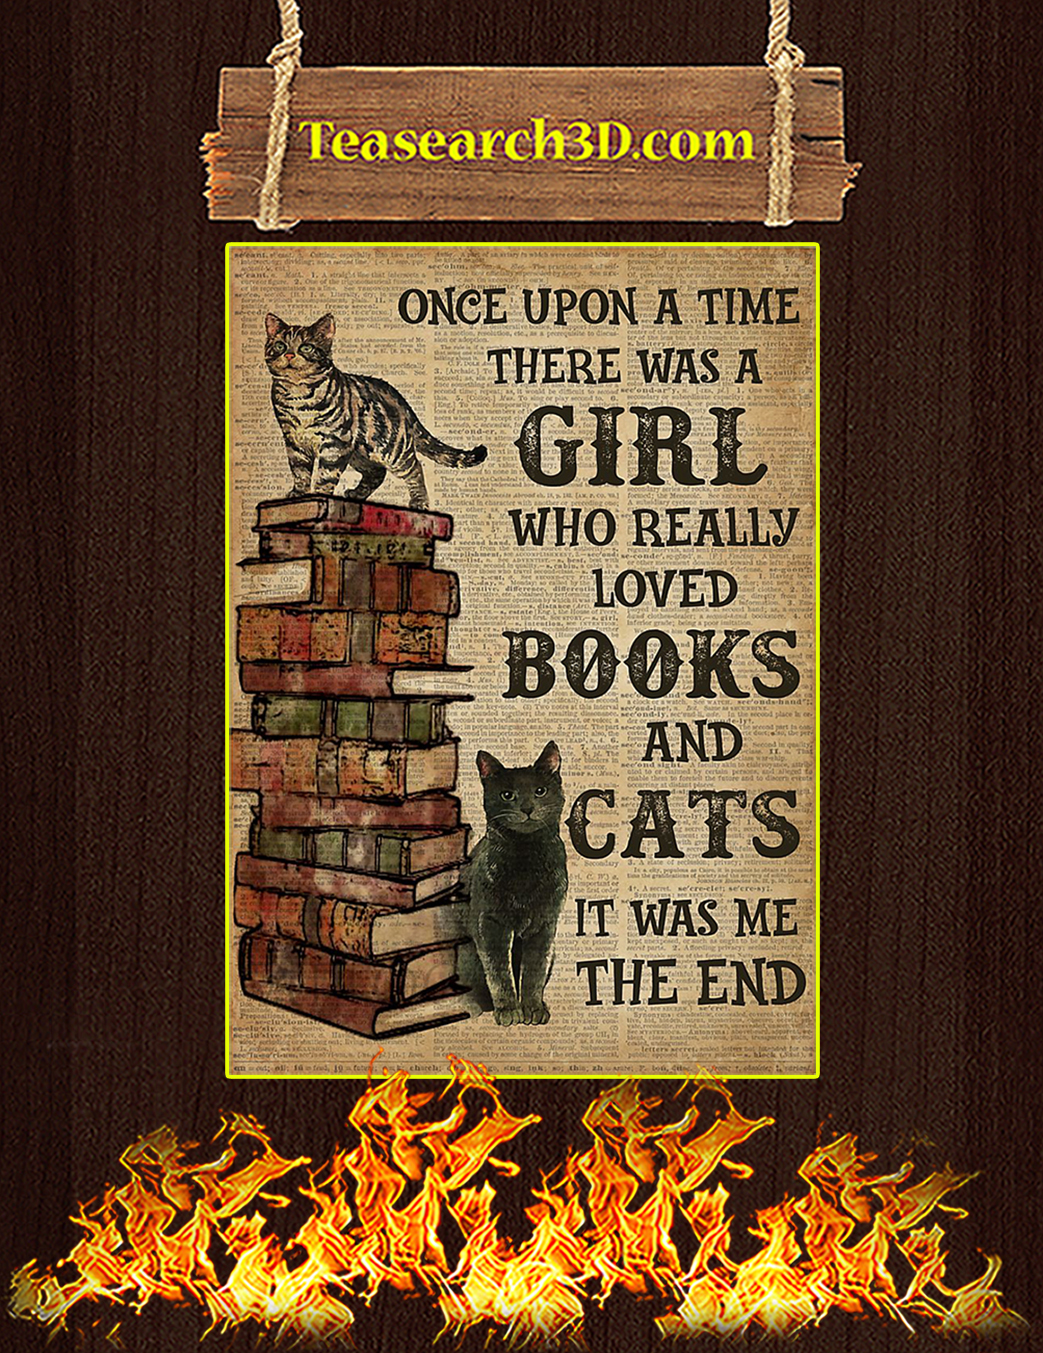 Once Upon A Time There Was A Girl Loved Boojs And Cats Poster A1